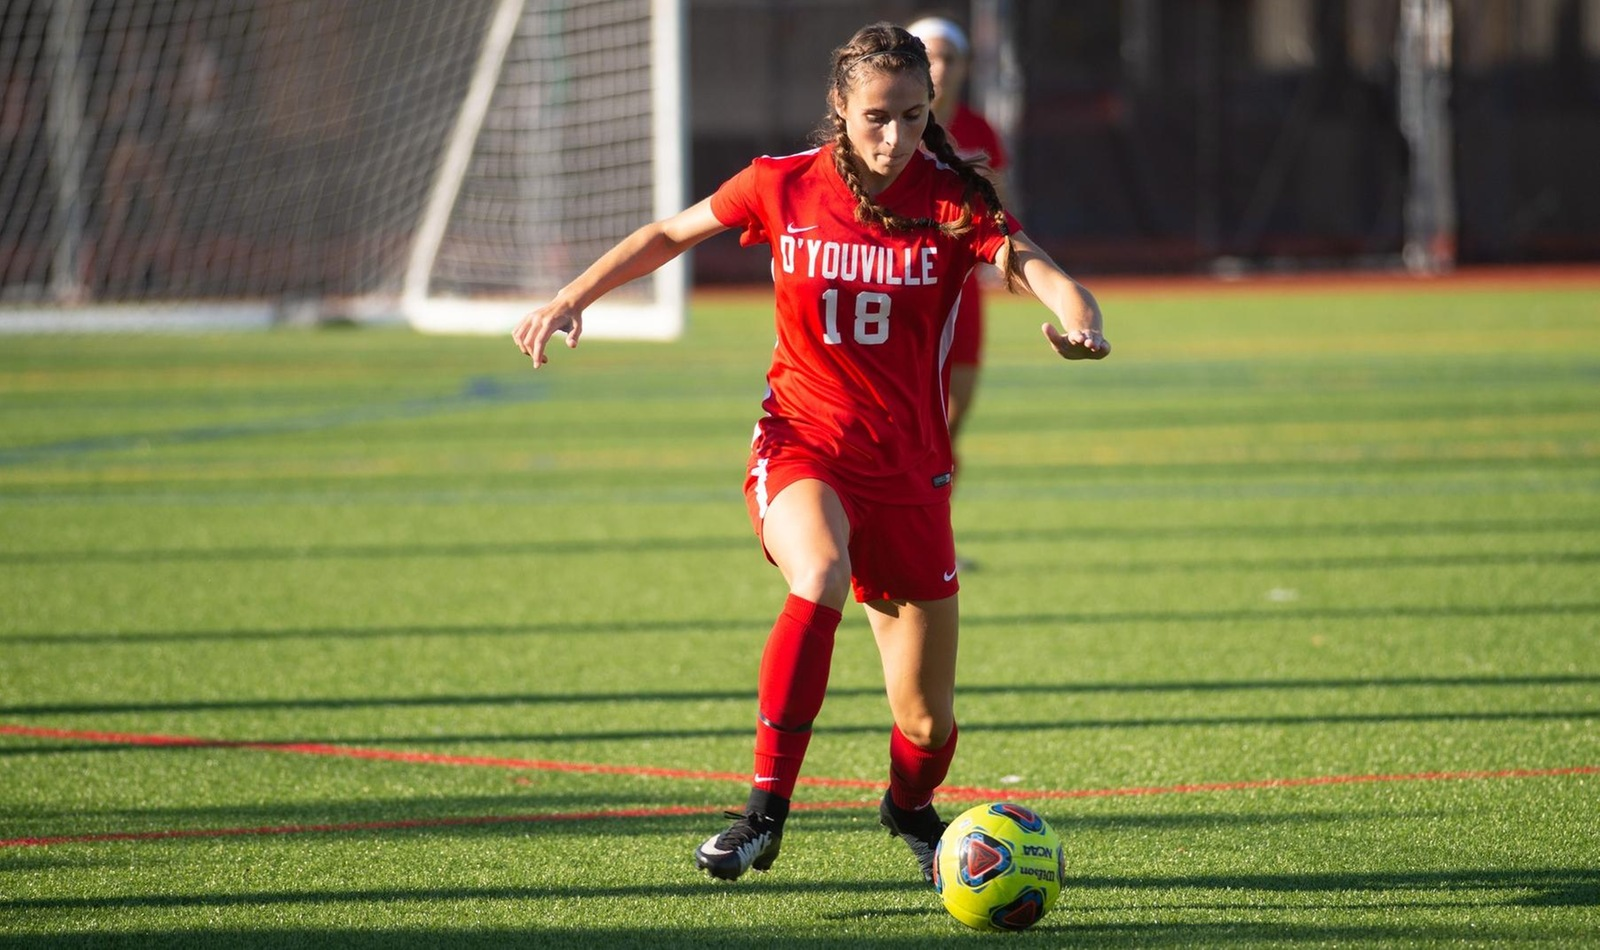 Freshman Margret Leeds recorded a goal and assist in the team's 2-0 win over Pitt.-Greensburg